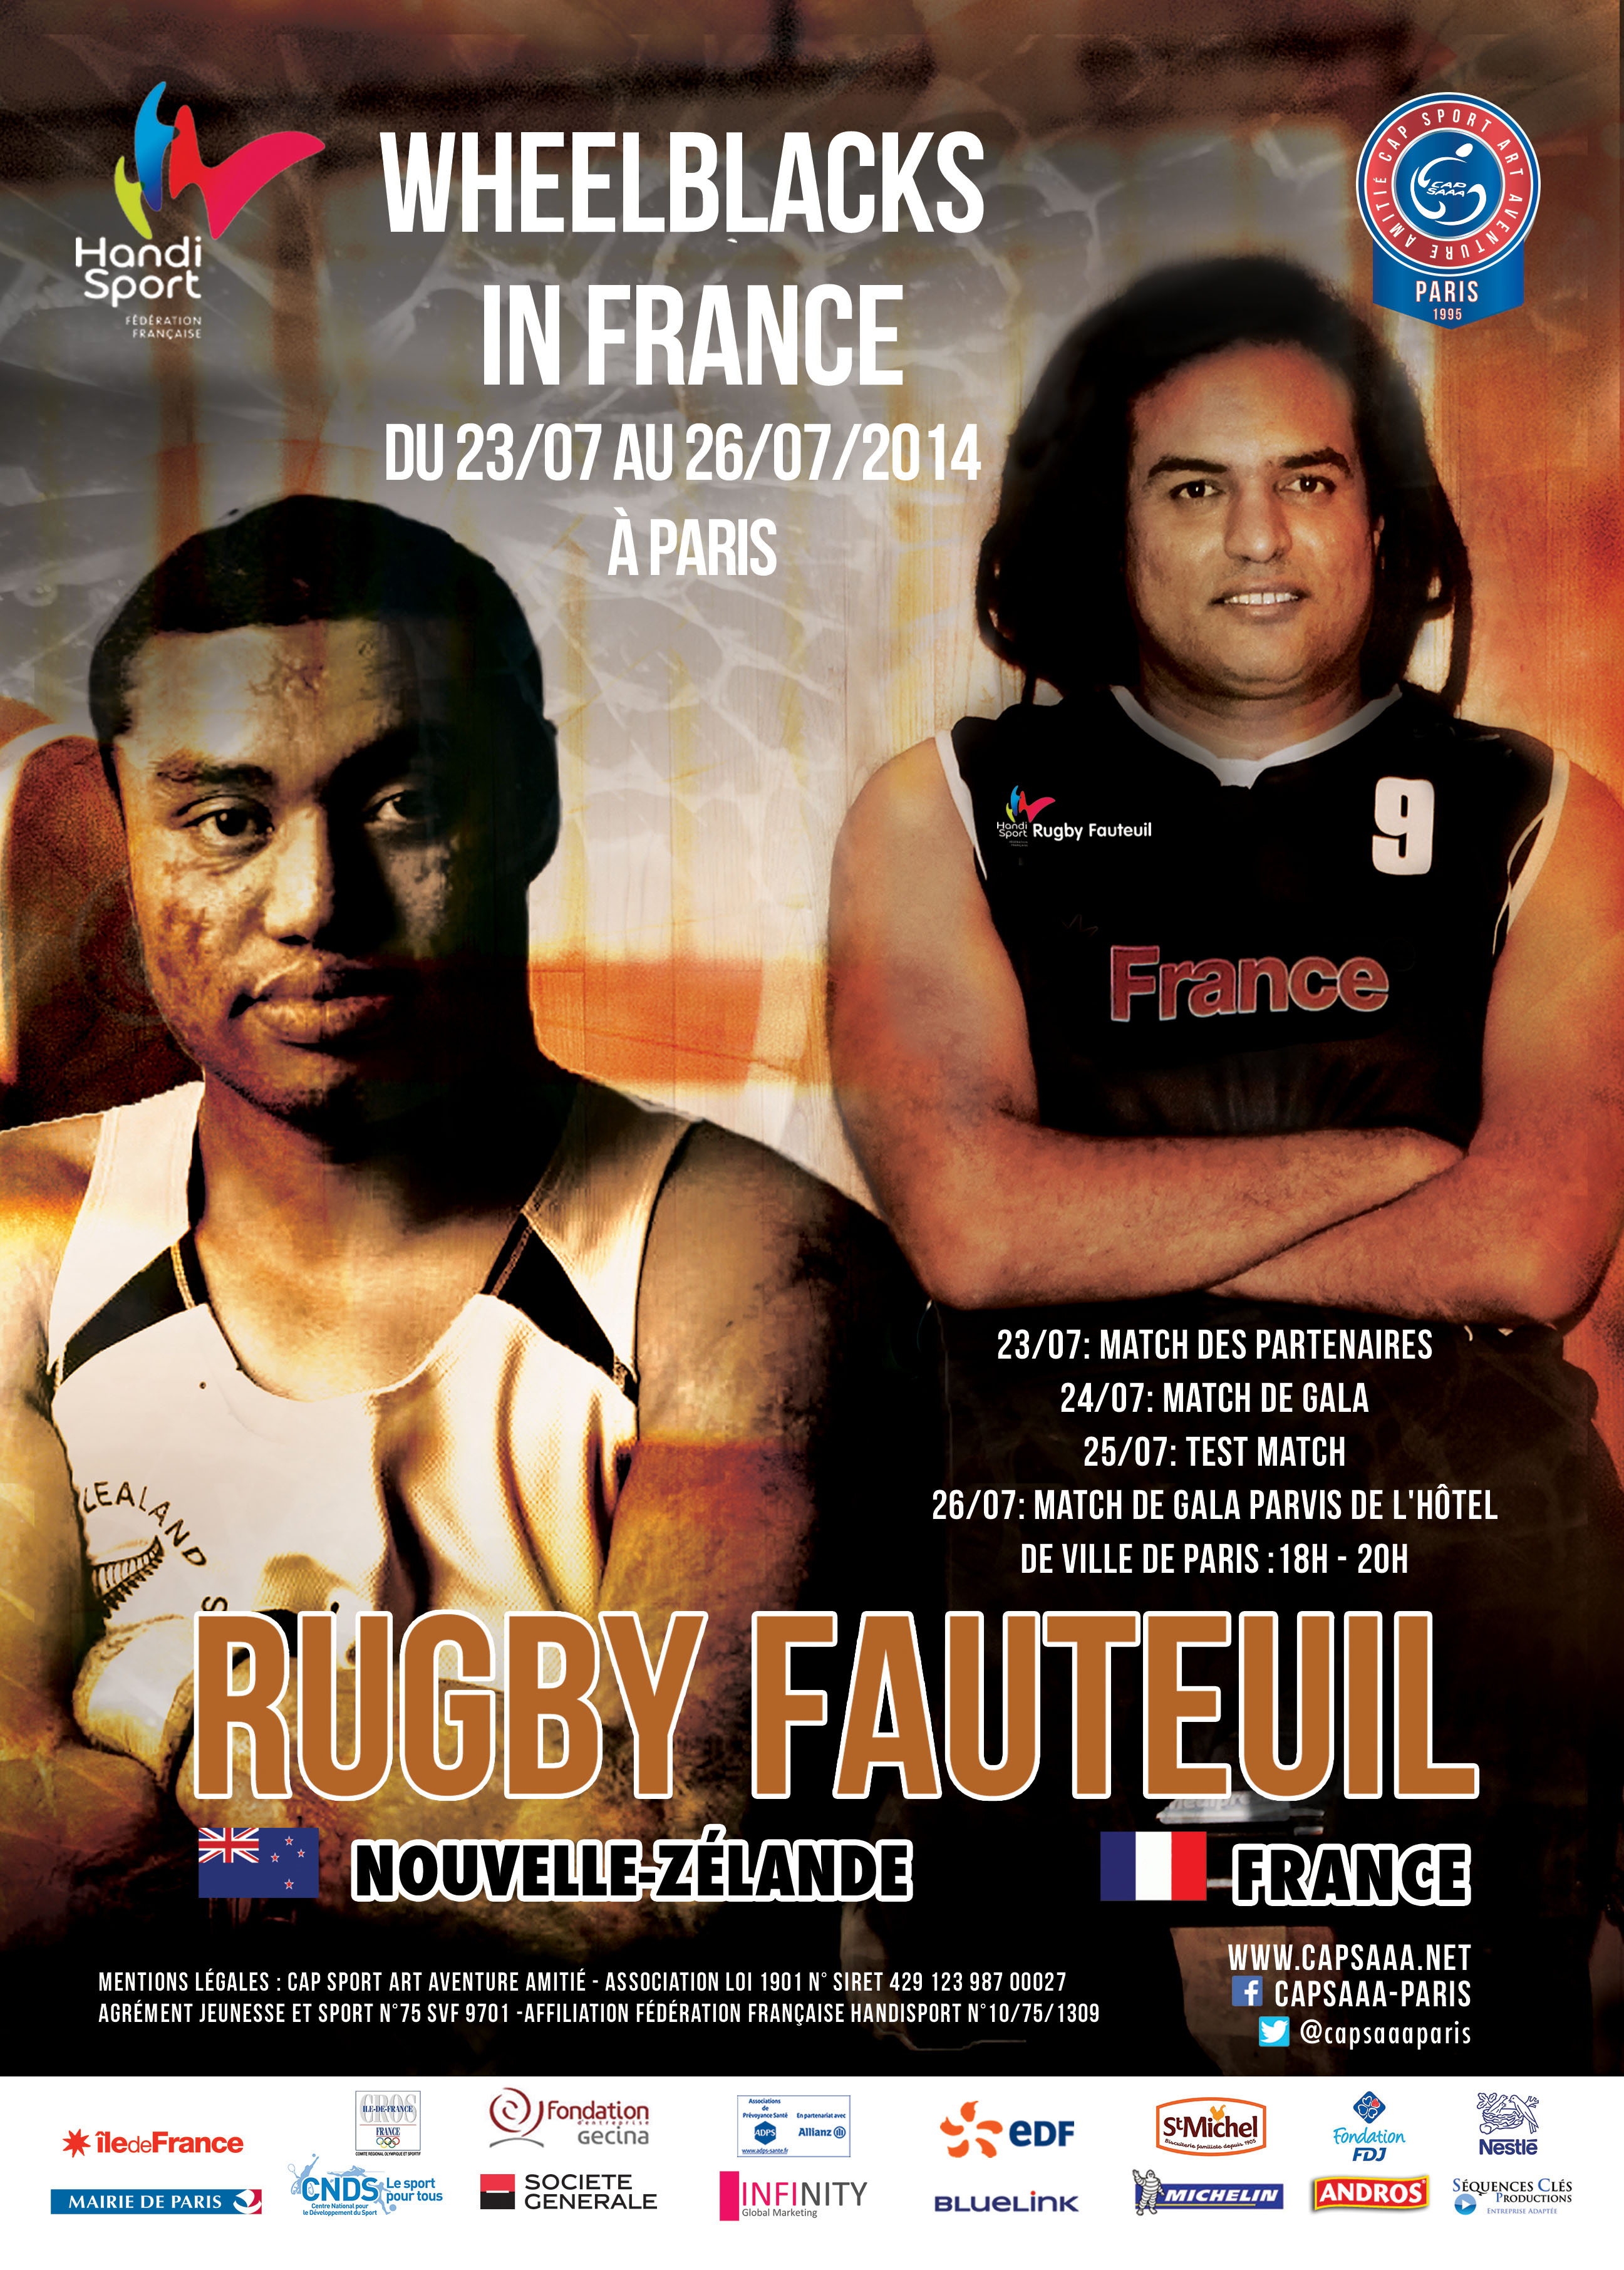 Rugby fauteuil : WheelBlacks in France